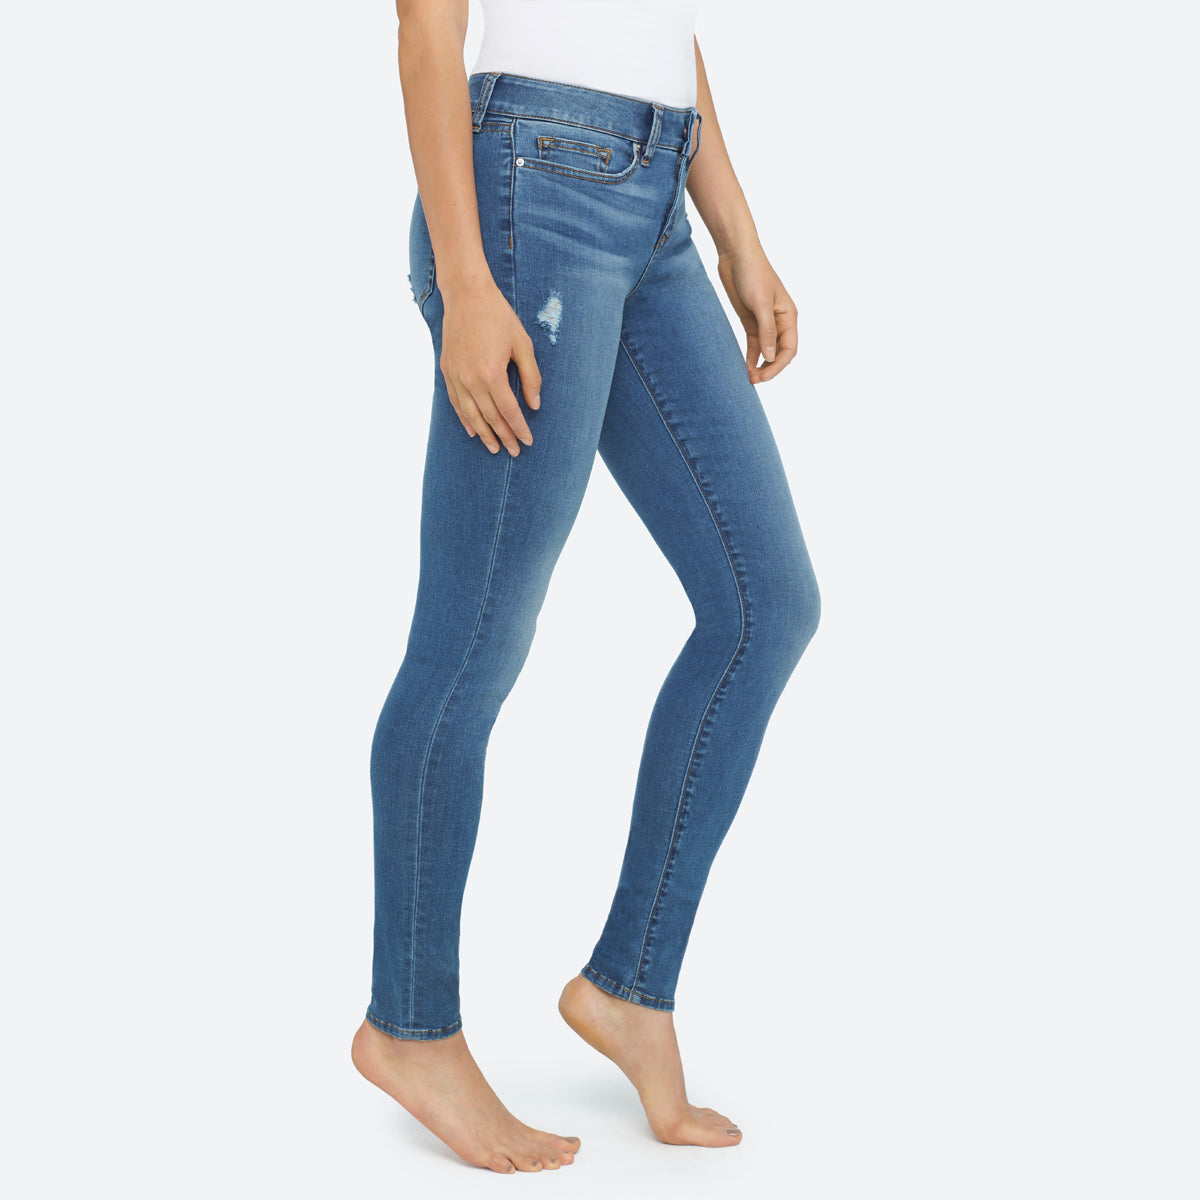 Super sweet pair of skinny jeans! My husband really likes them and wants them in different colors. The pockets are large enough to fit his wallet and phone and such.